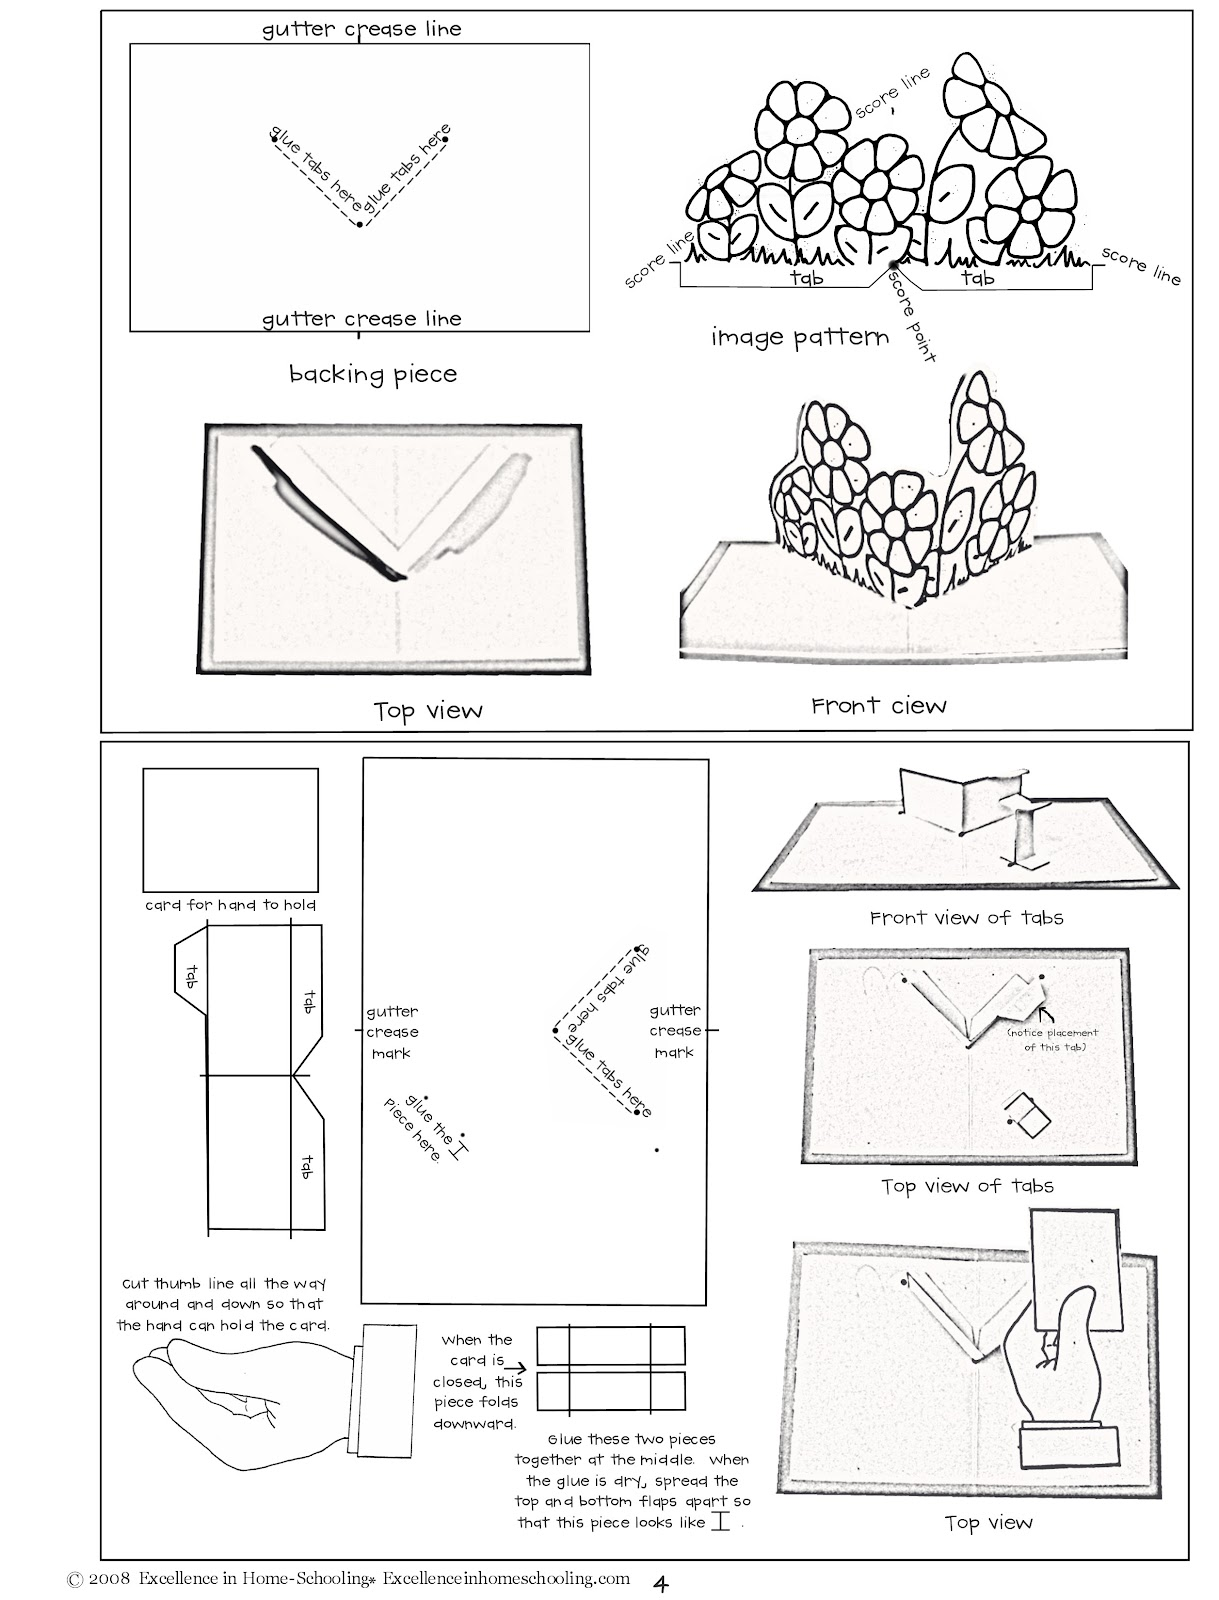 Lauras Frayed Knot Pop Up Cards Instructions And Patterns